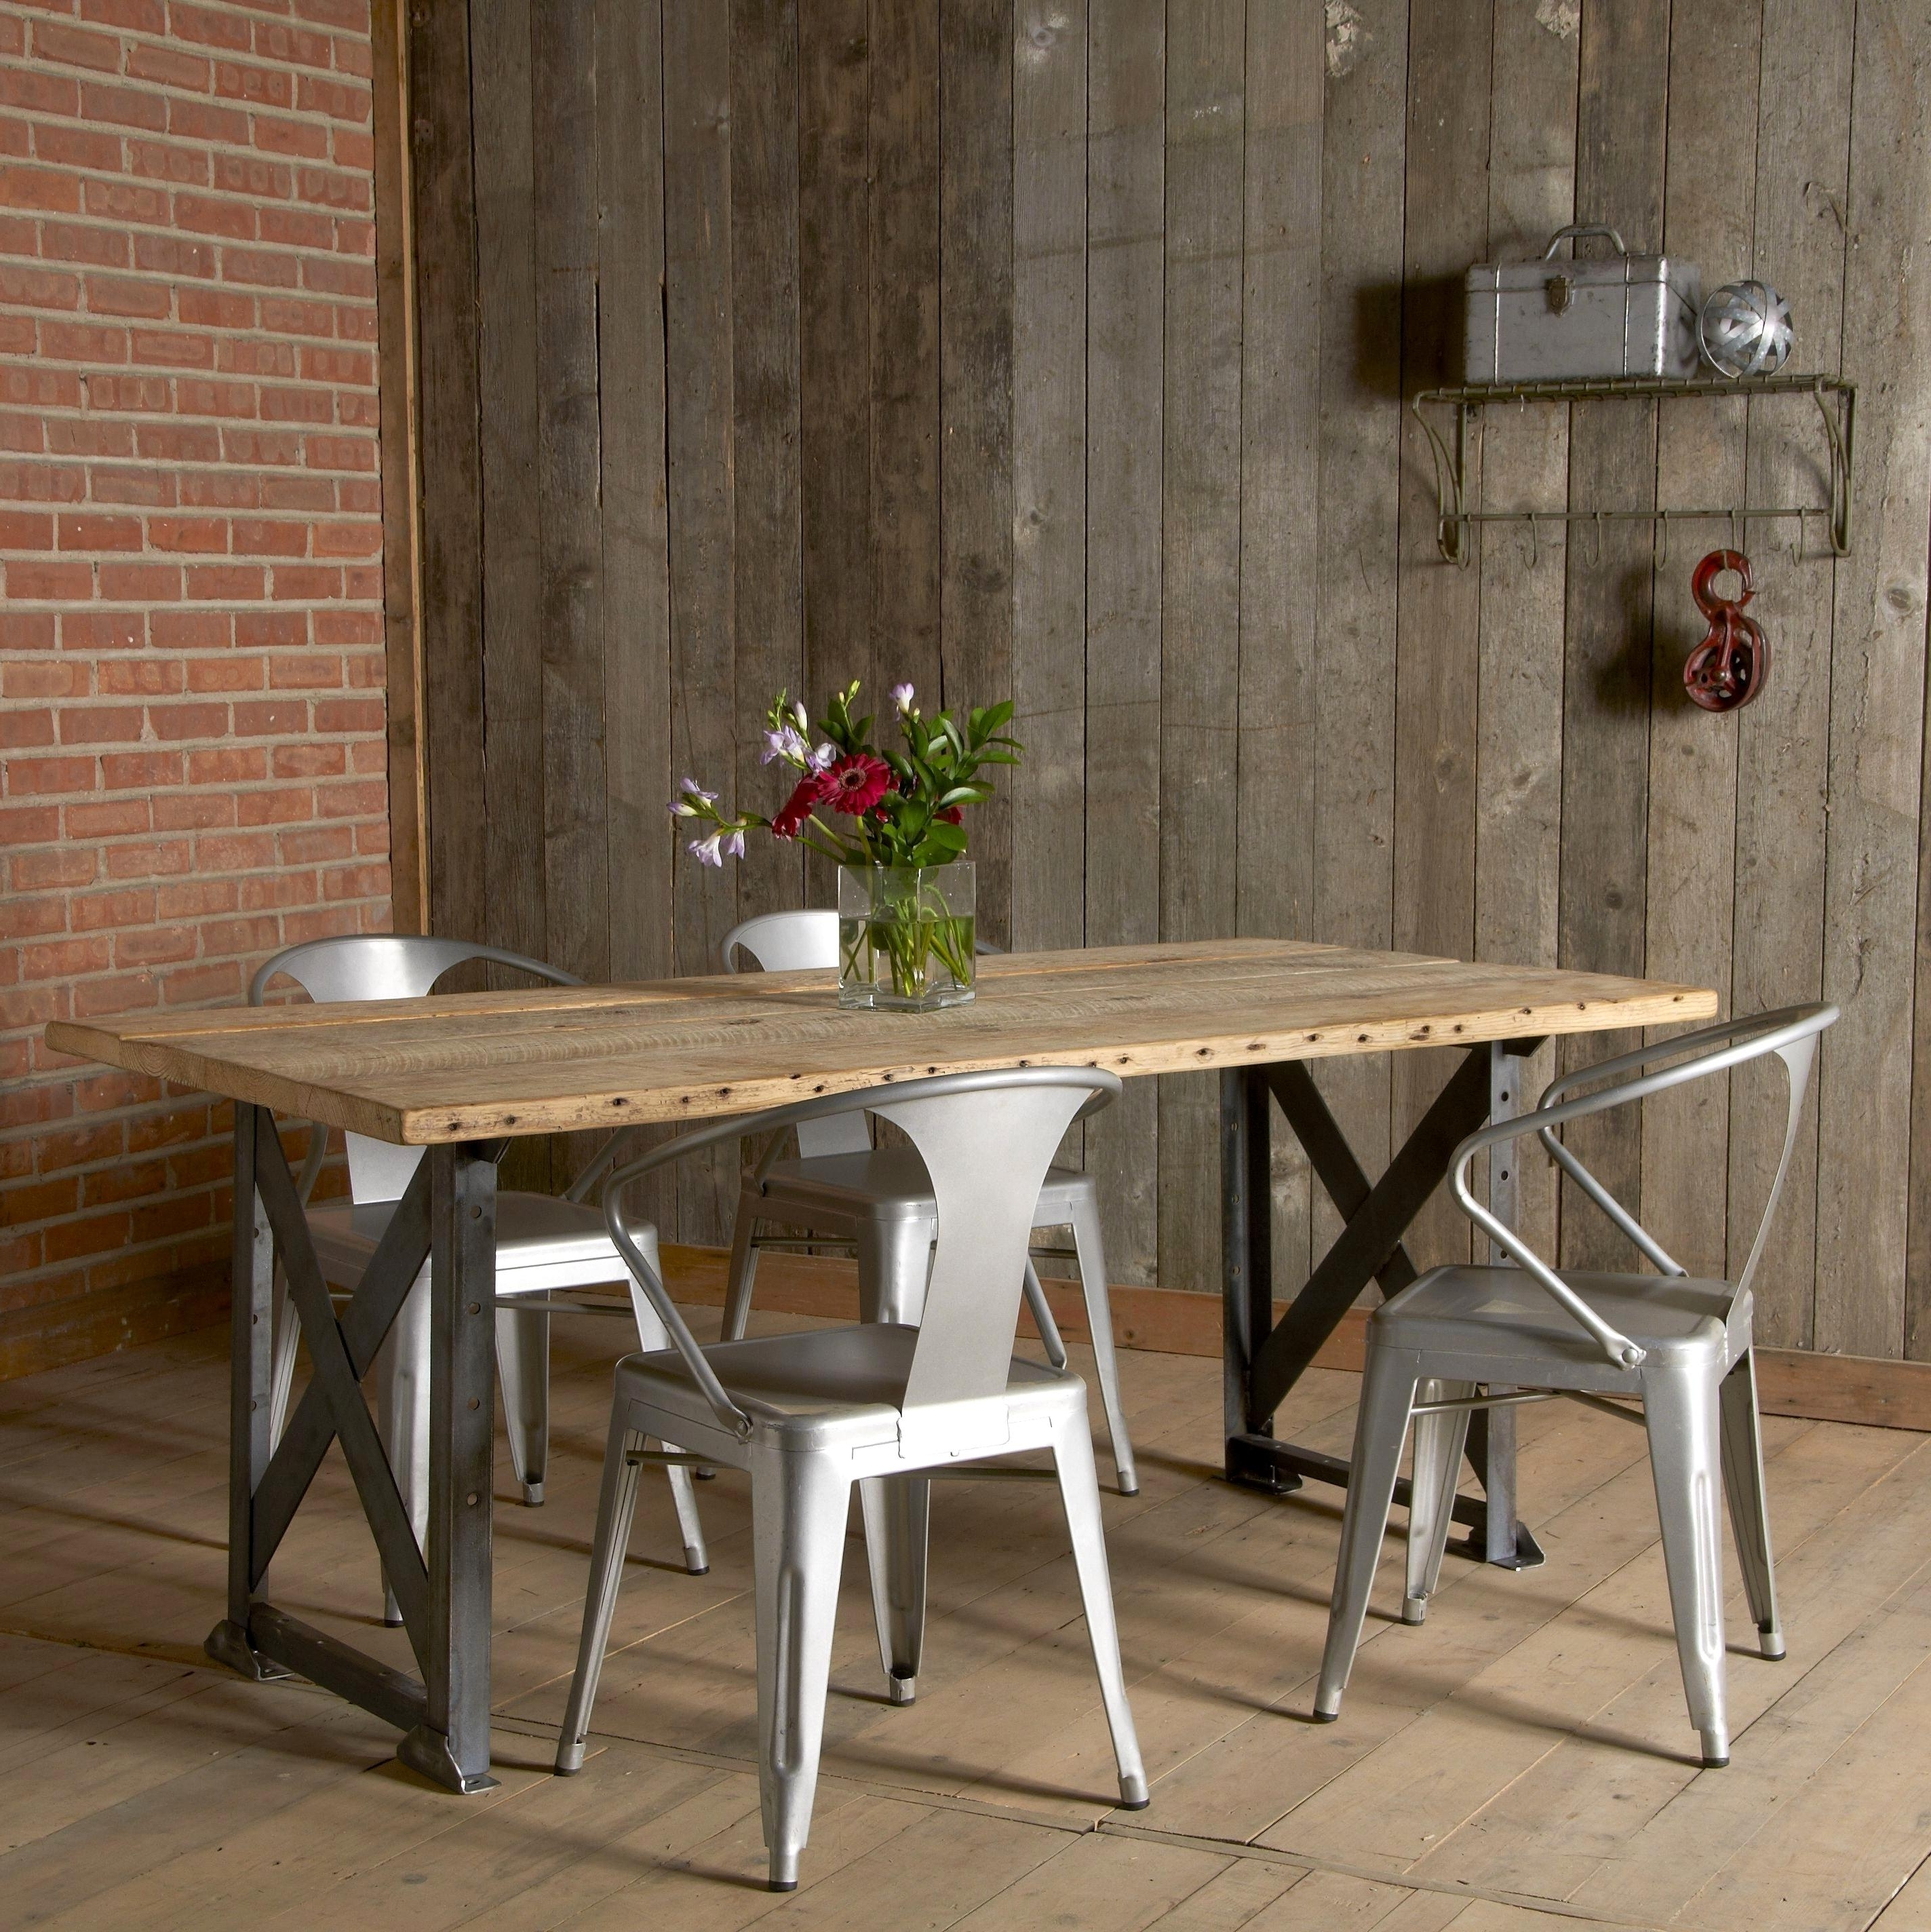 Fantastic Industrial Style Dining Table Wood Industrial Reclaimed For Most Popular Industrial Style Dining Tables (View 21 of 25)